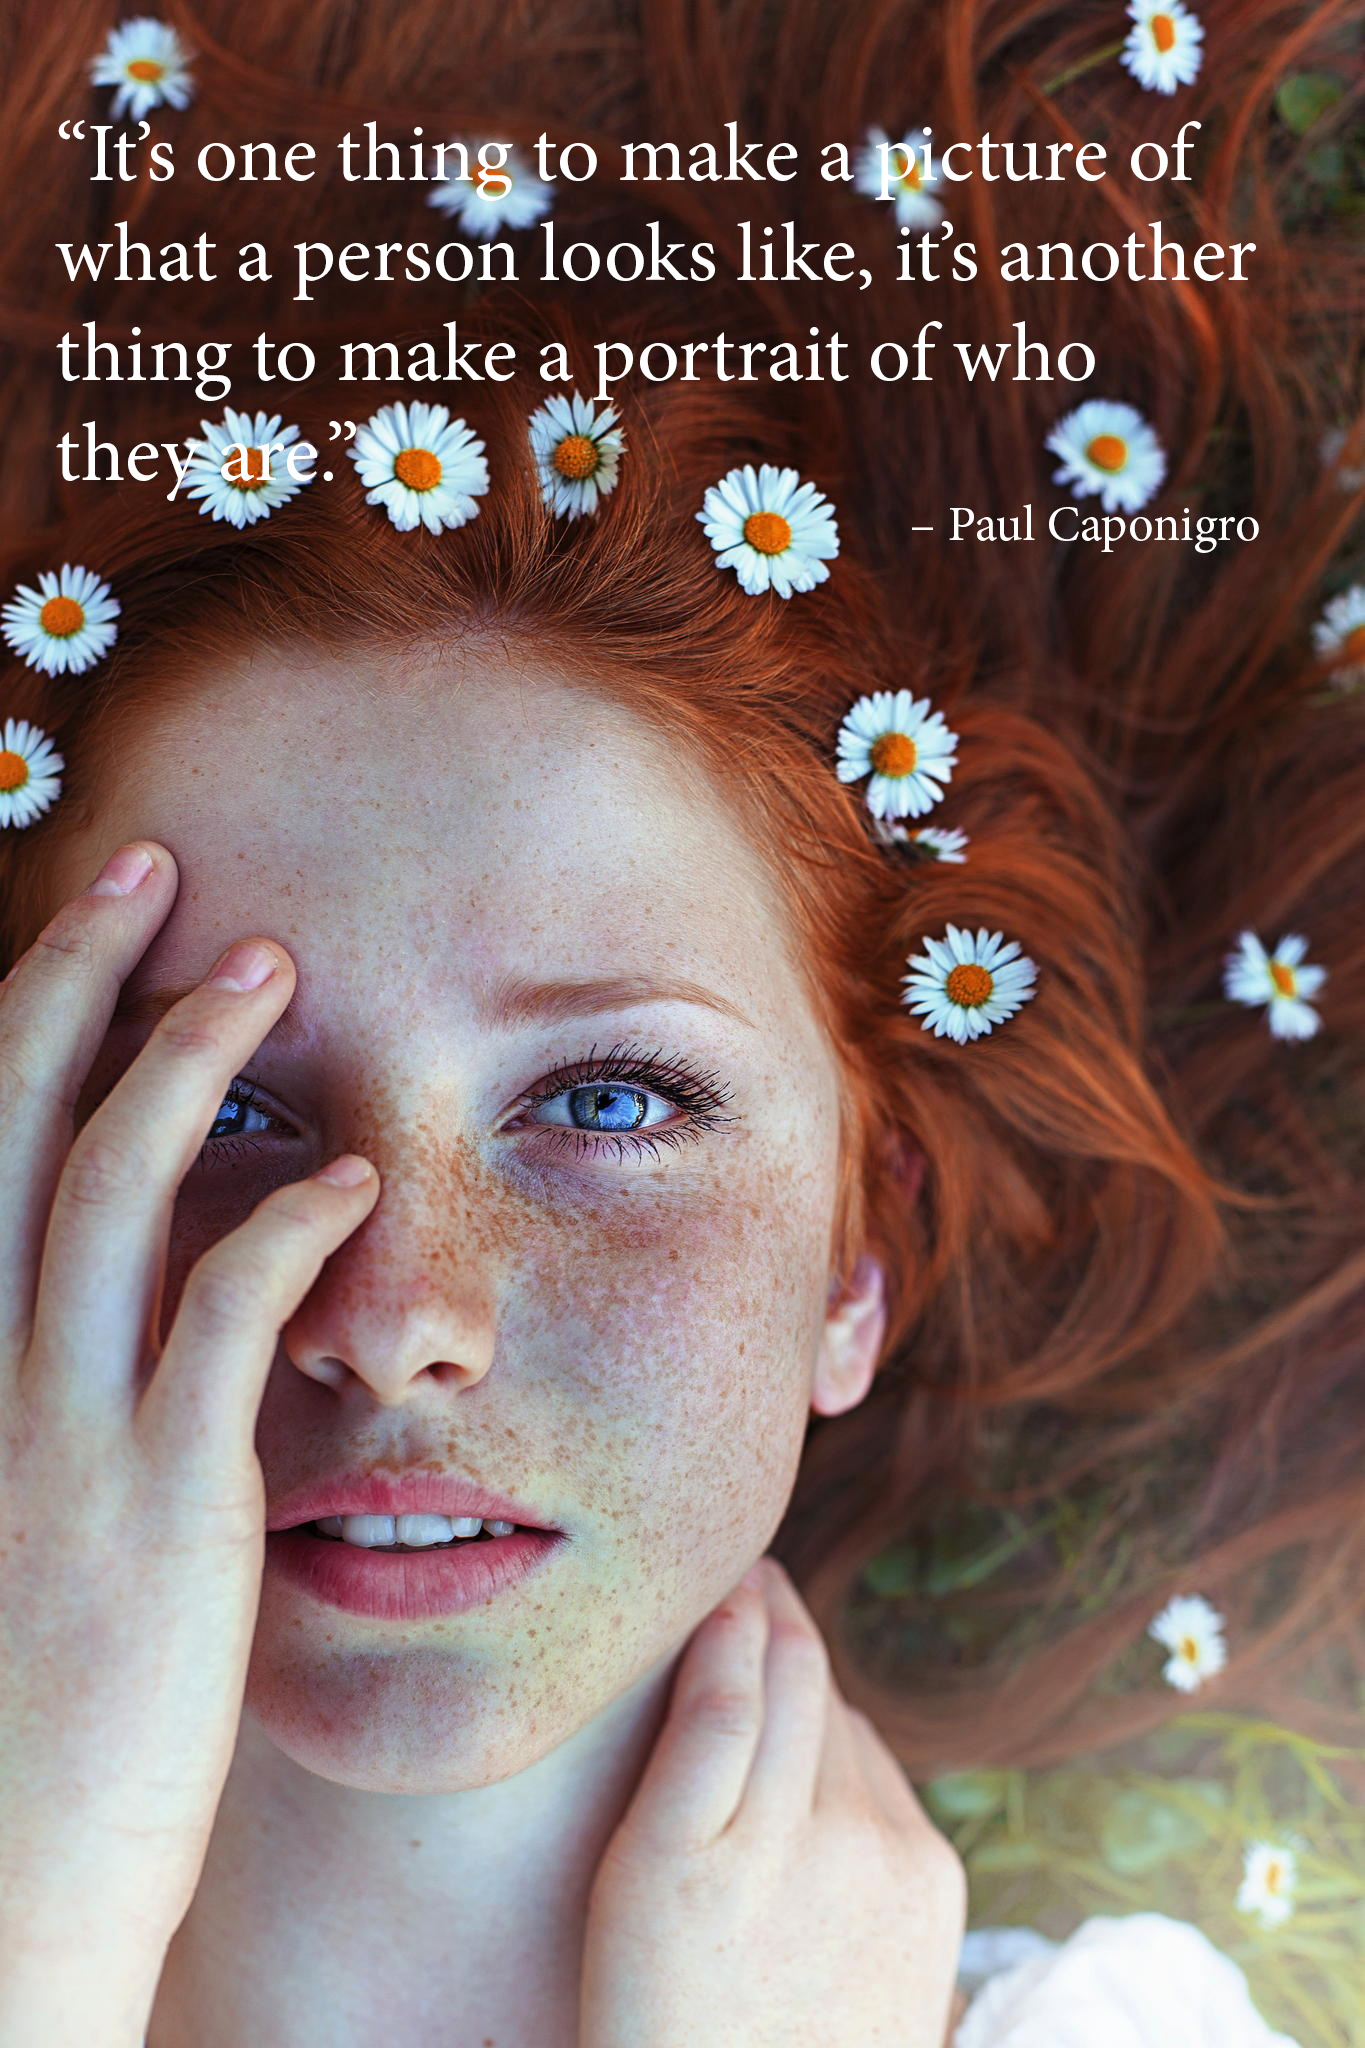 500px Blog 187 187 40 Inspirational Photography Quotes And 10